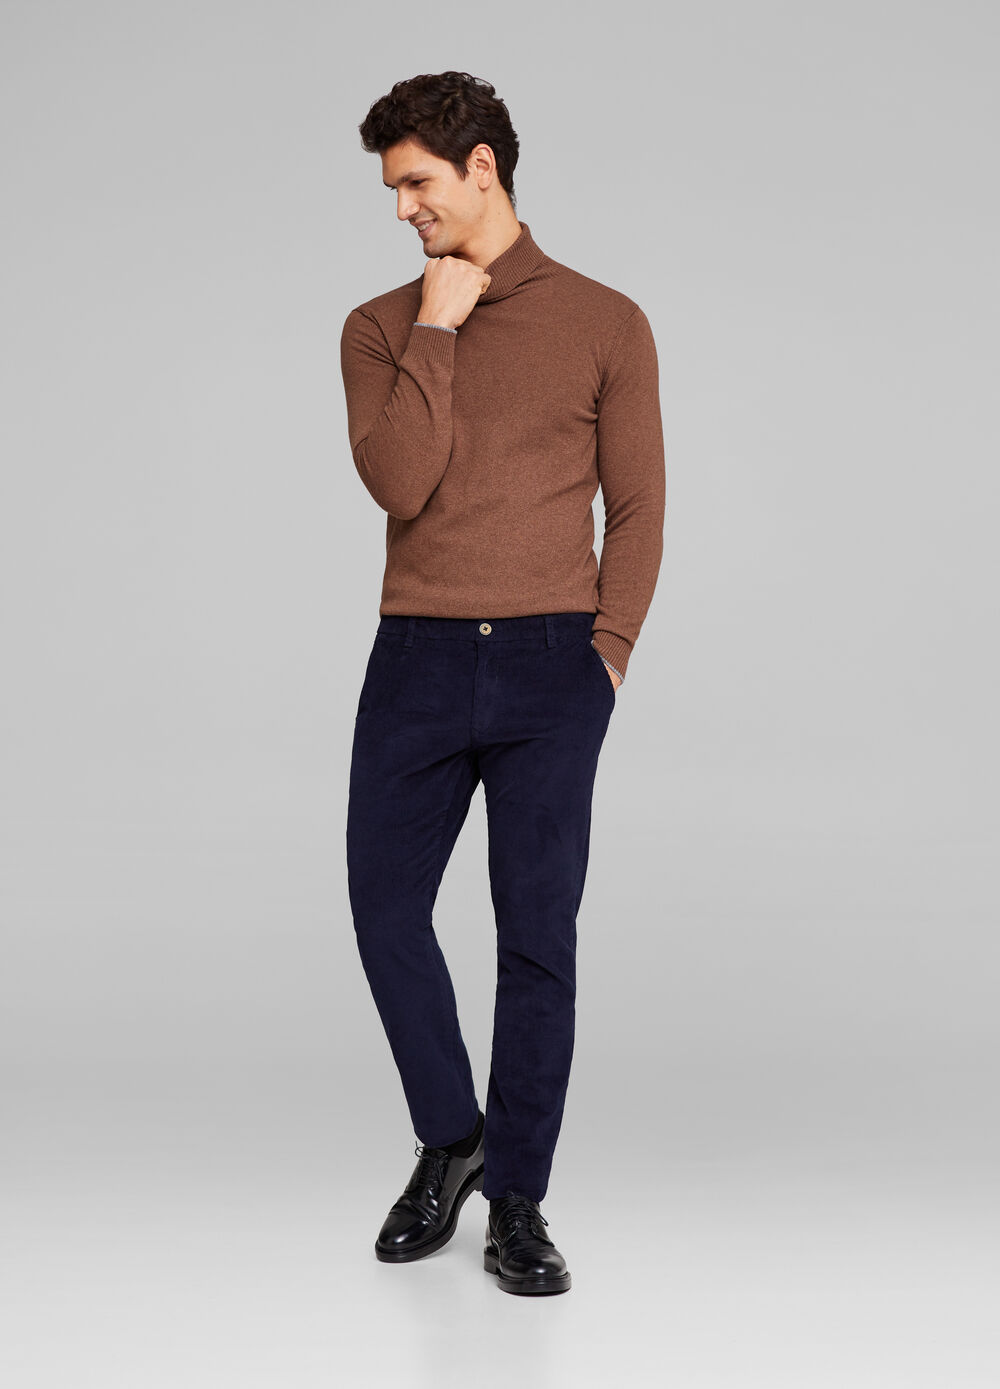 Pantaloni chino premium stretch